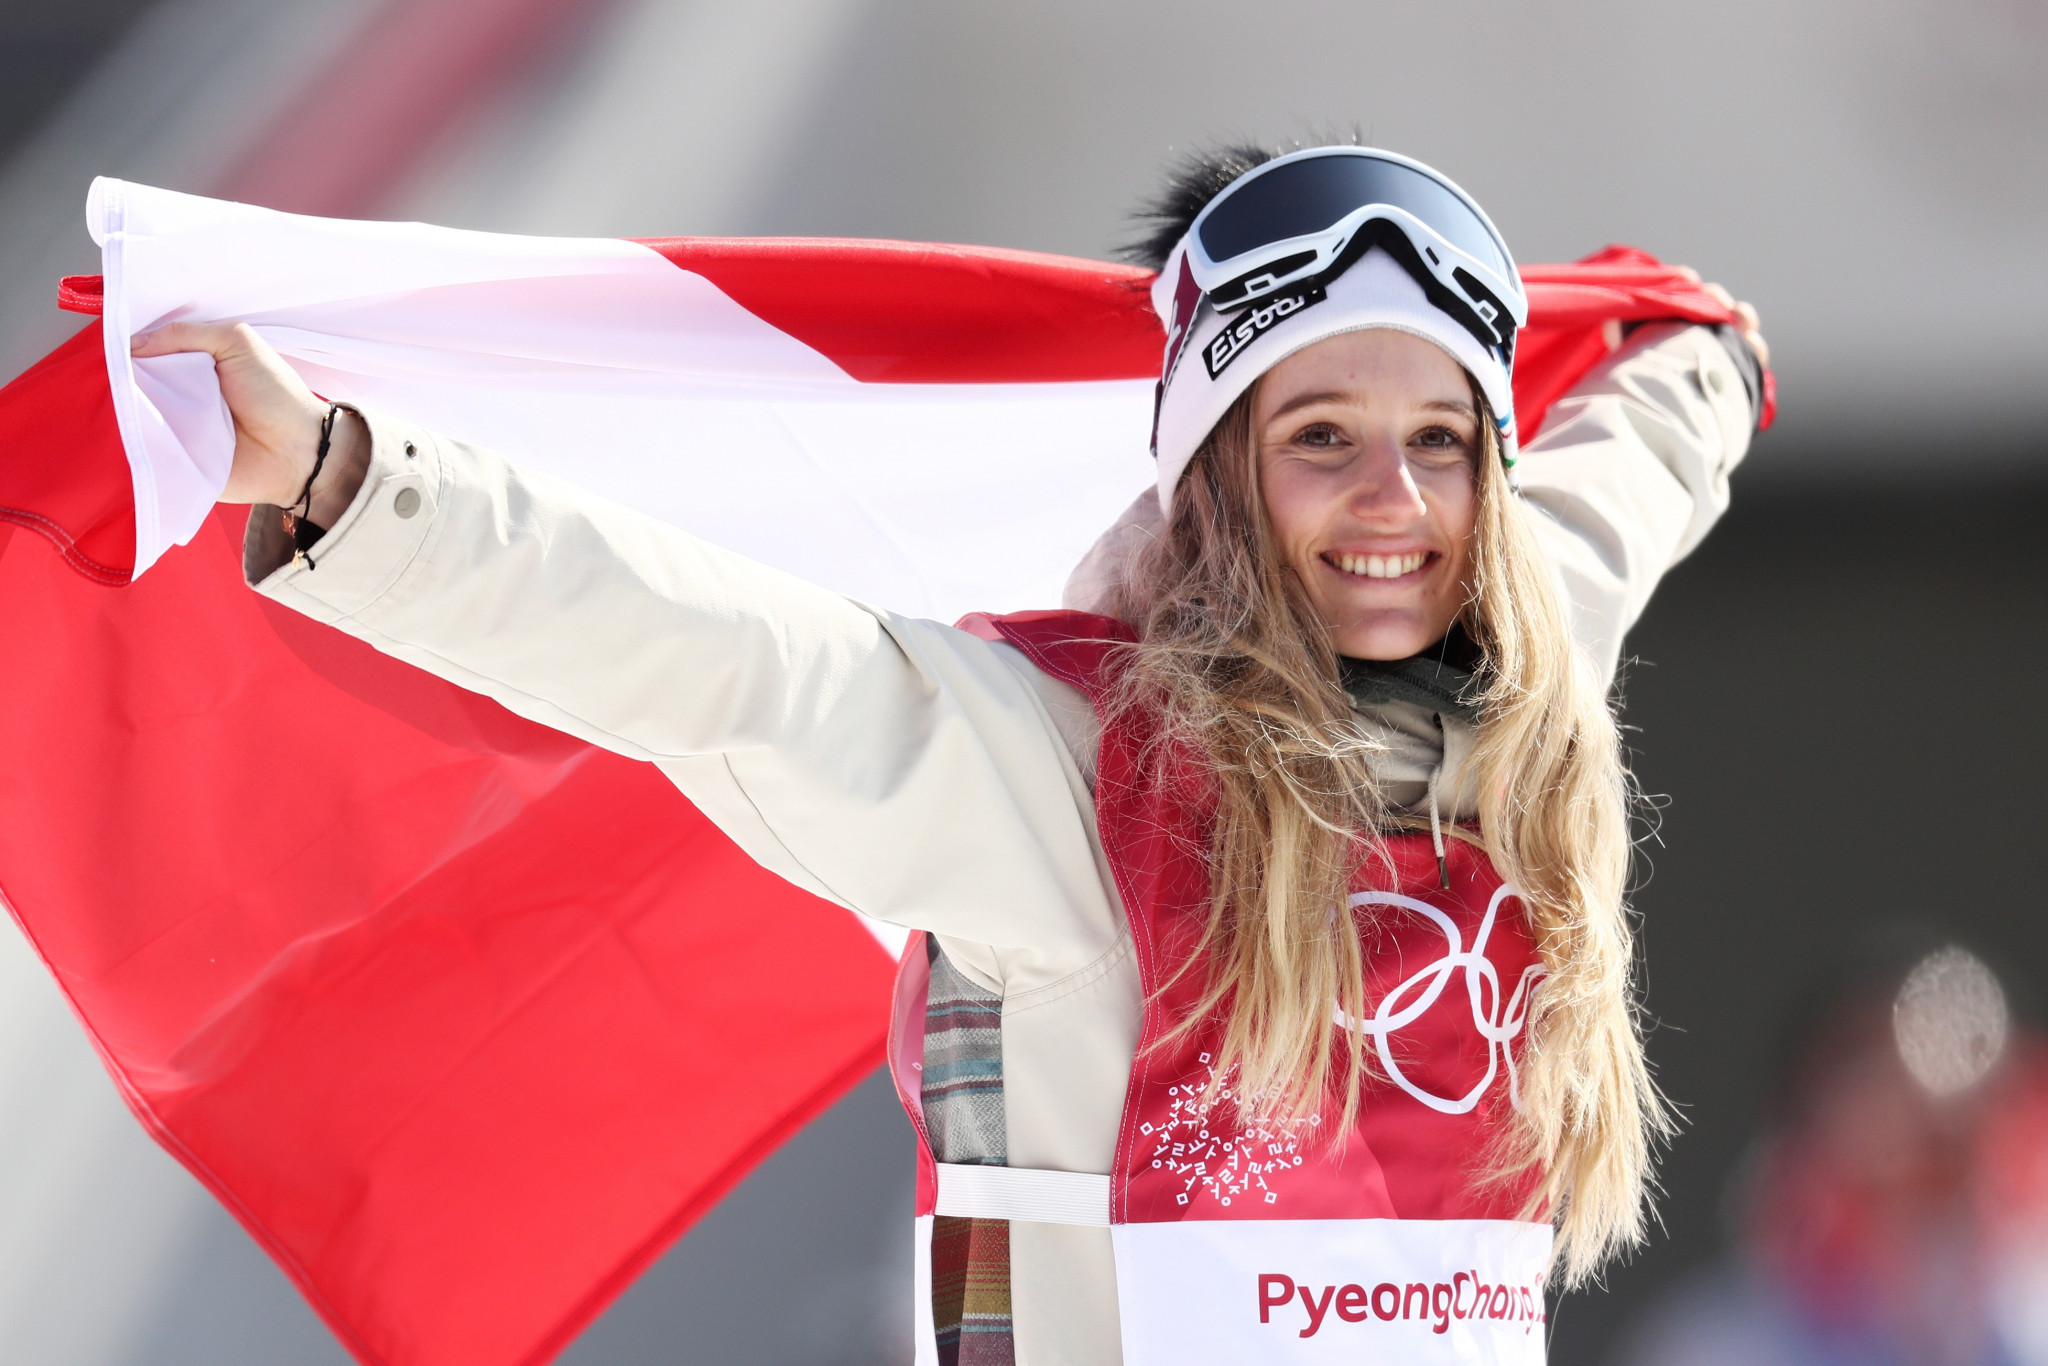 Austria's Gasser wins first-ever Olympic big air snowboard gold medal at Pyeongchang 2018